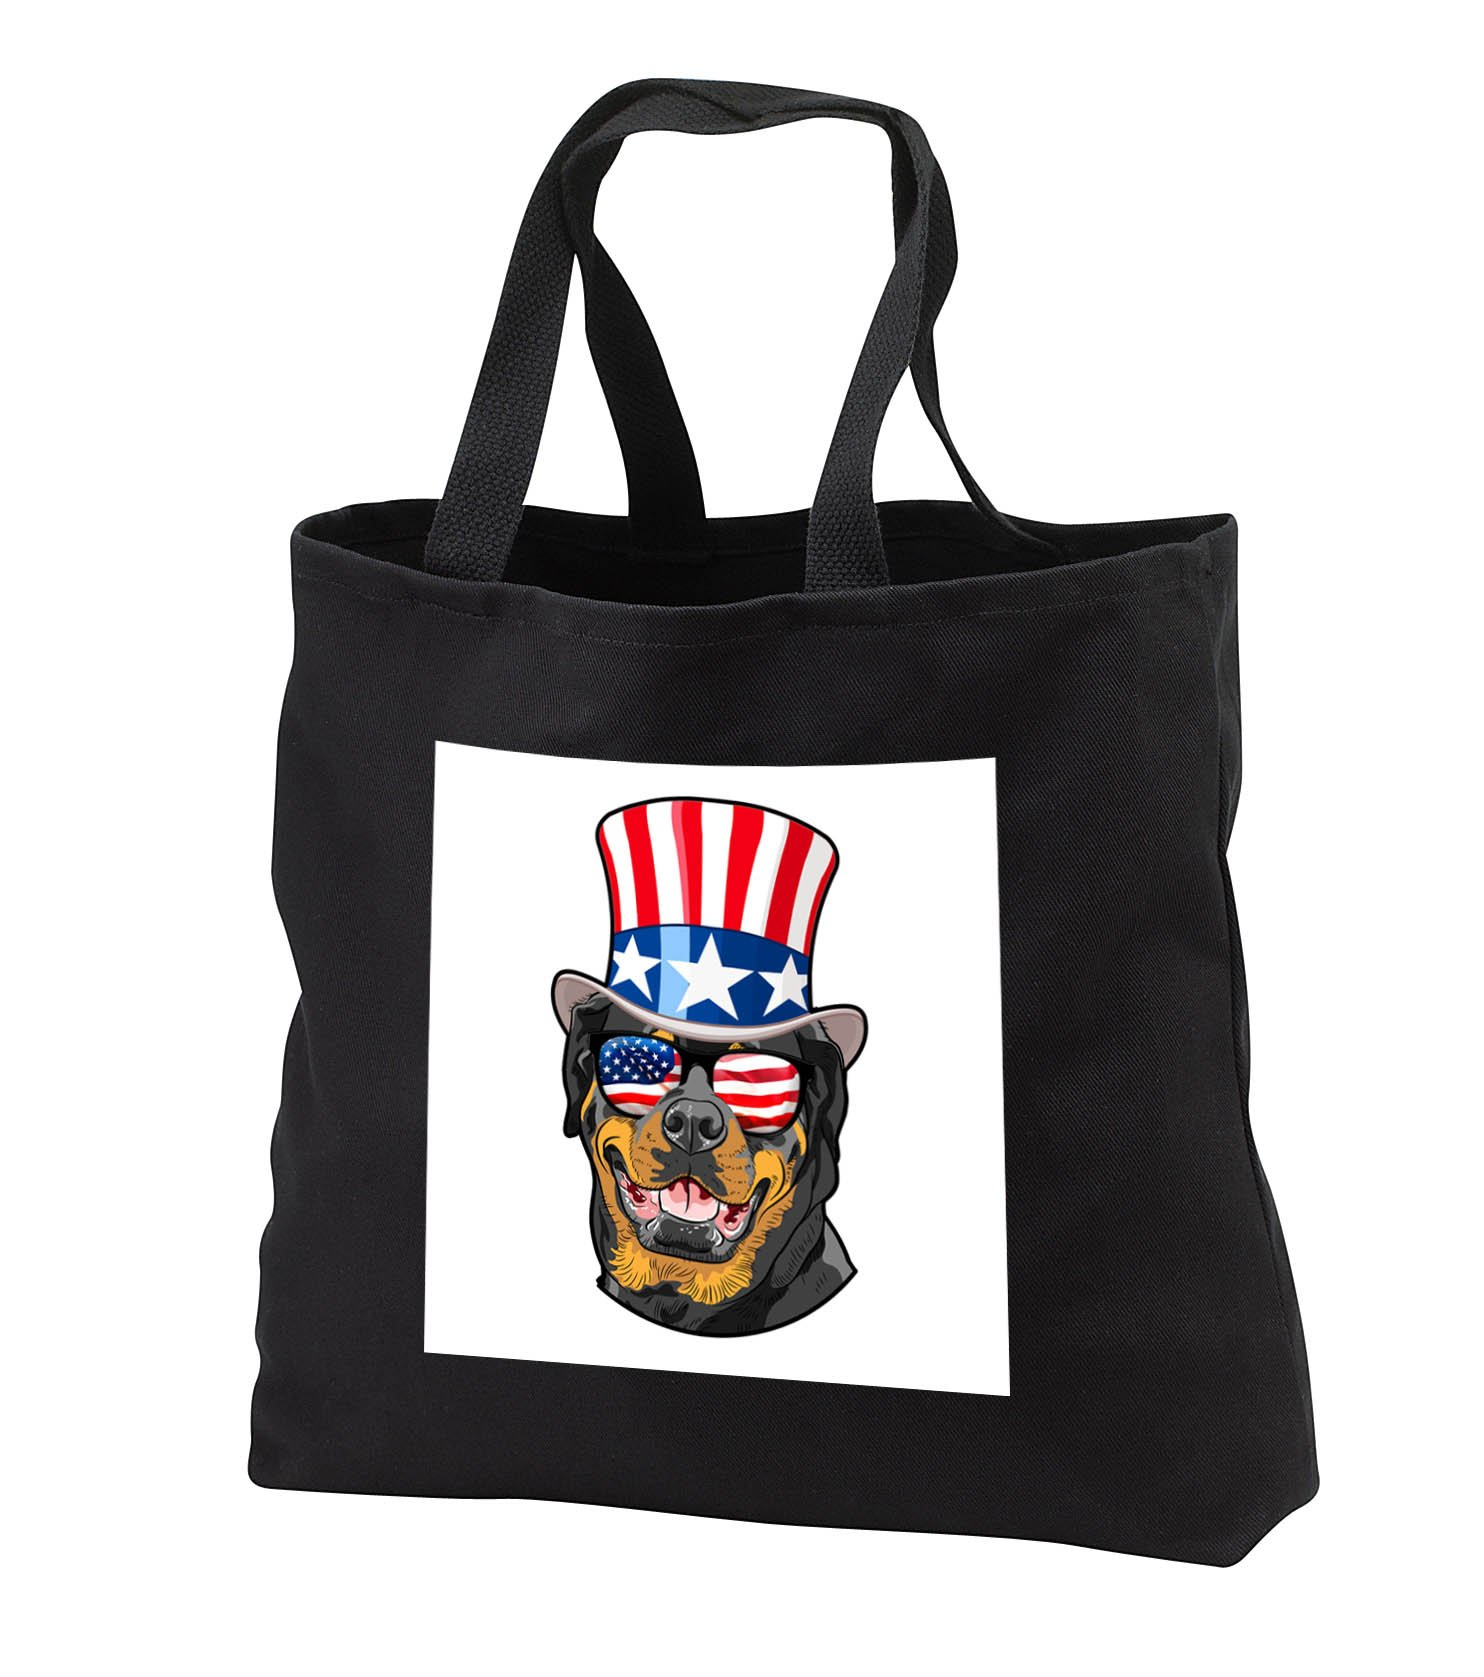 Patriotic American Dogs - Rottweiler Dog With American Flag Sunglasses and Top hat - Tote Bags - Black Tote Bag JUMBO 20w x 15h x 5d (tb_282704_3)